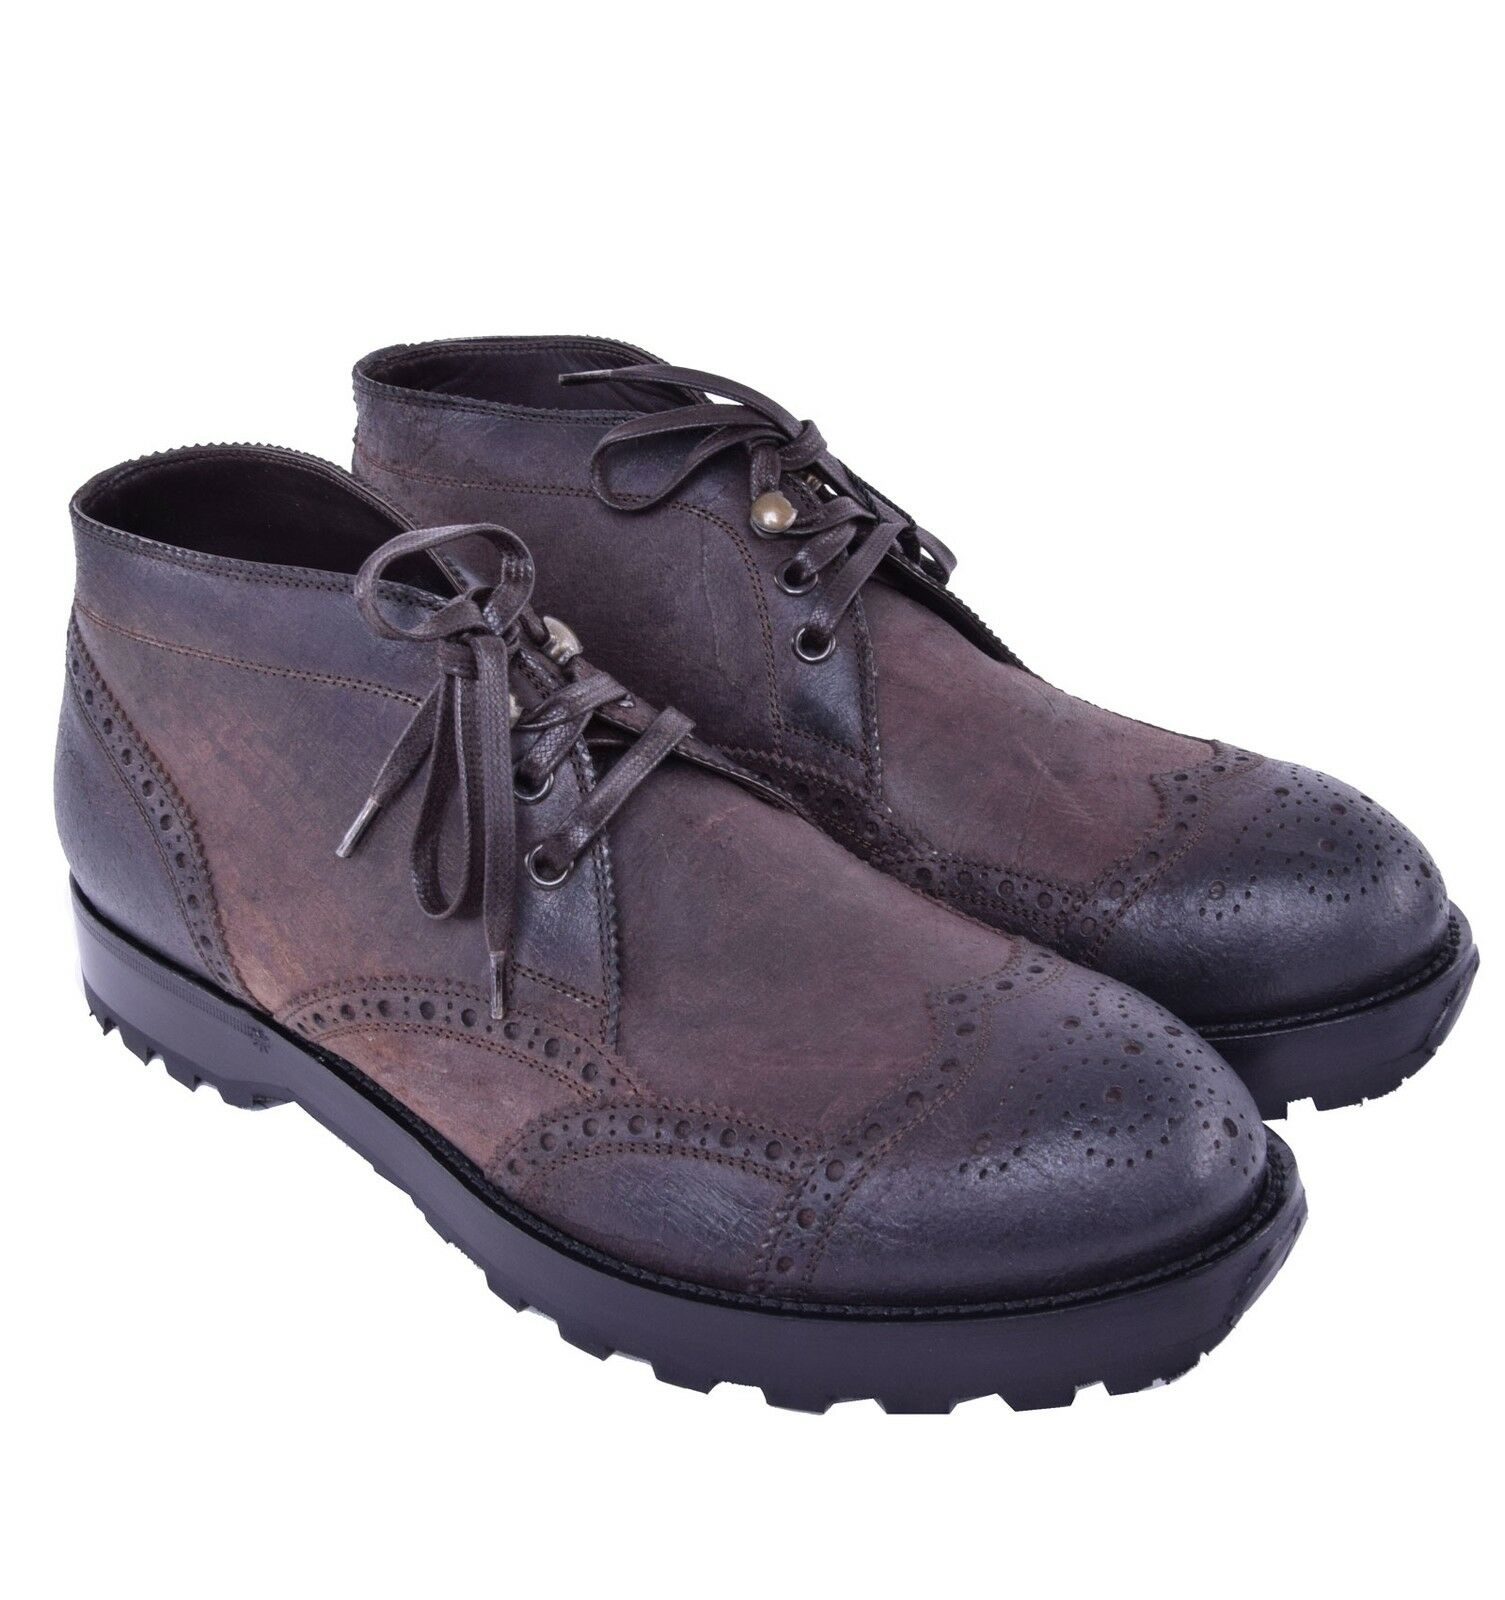 DOLCE & GABBANA Solid Waxed Leather Boots Shoes Brown 03847